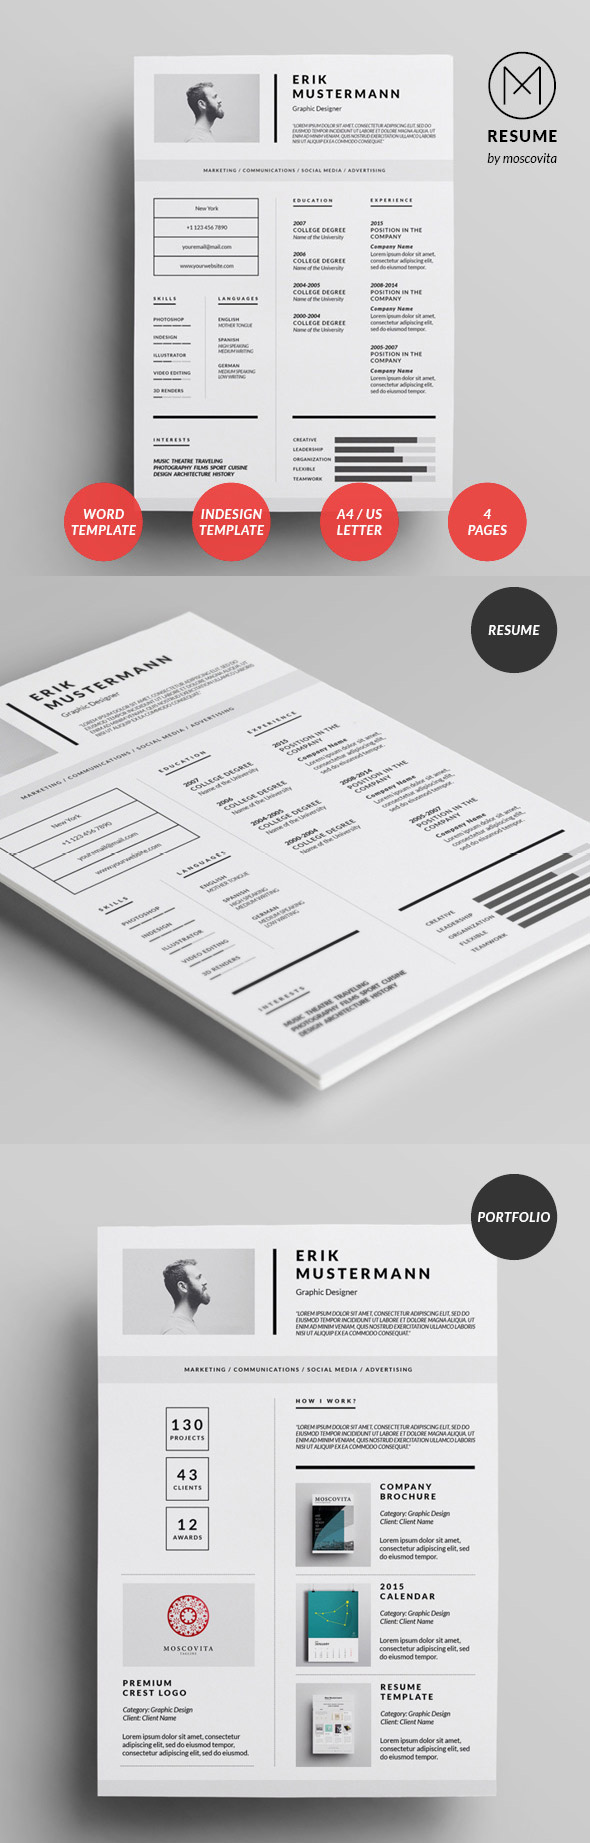 best resume templates design graphic junction professional cv software testing skills Resume Professional Graphic Design Resume